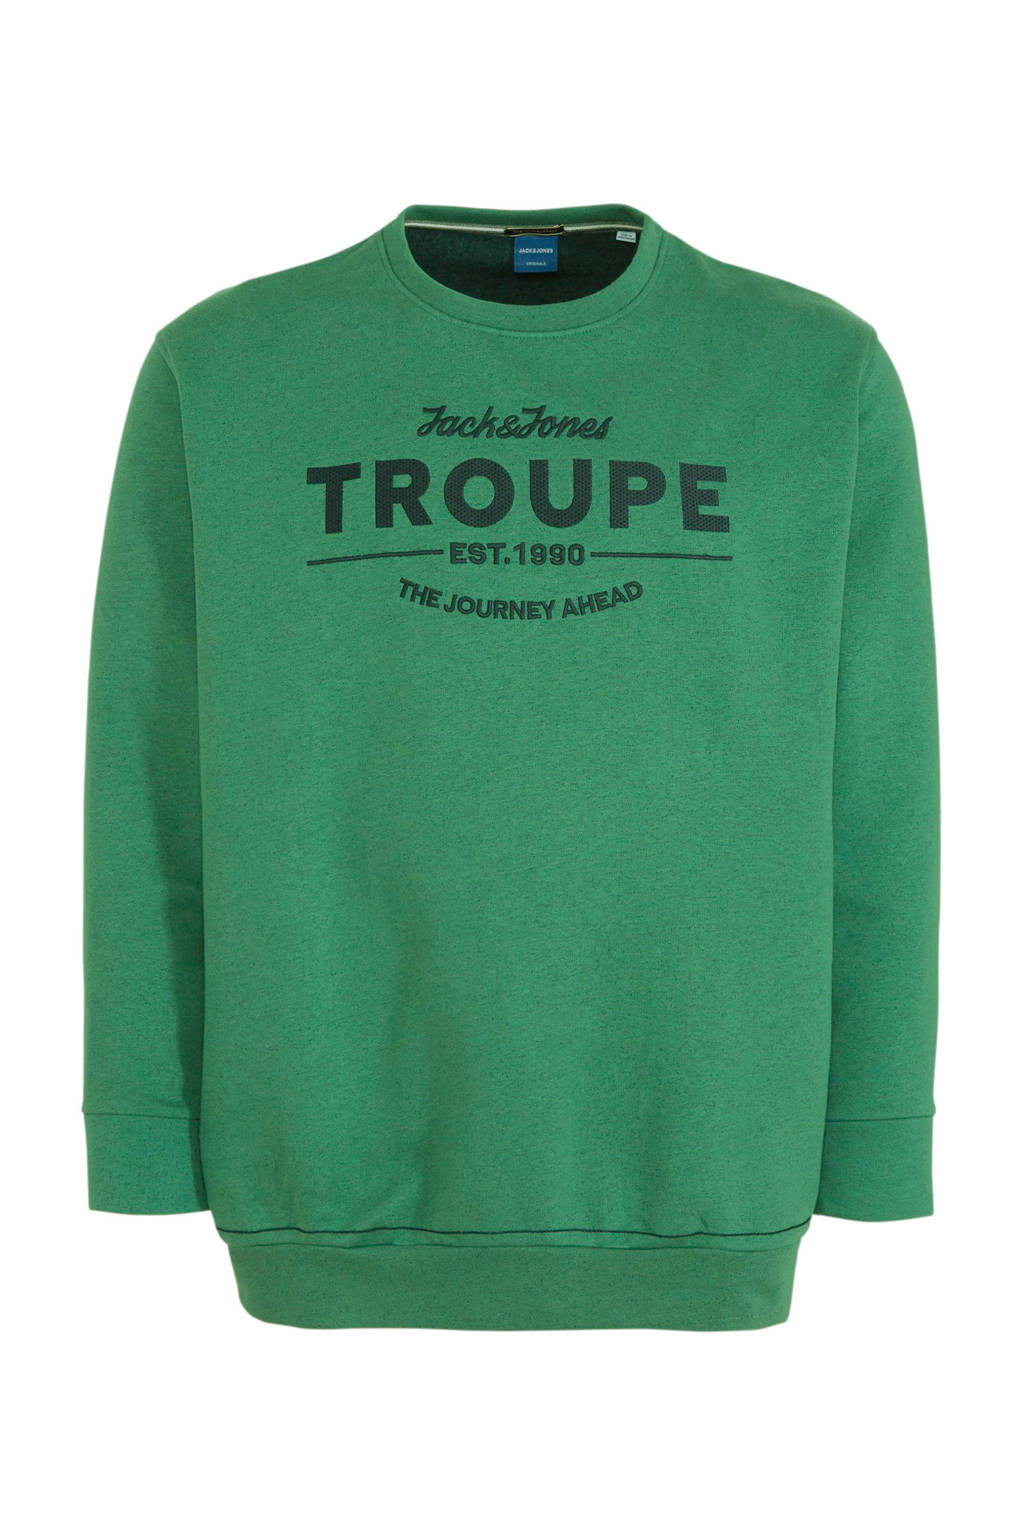 JACK & JONES PLUS SIZE sweater met printopdruk groen, Groen